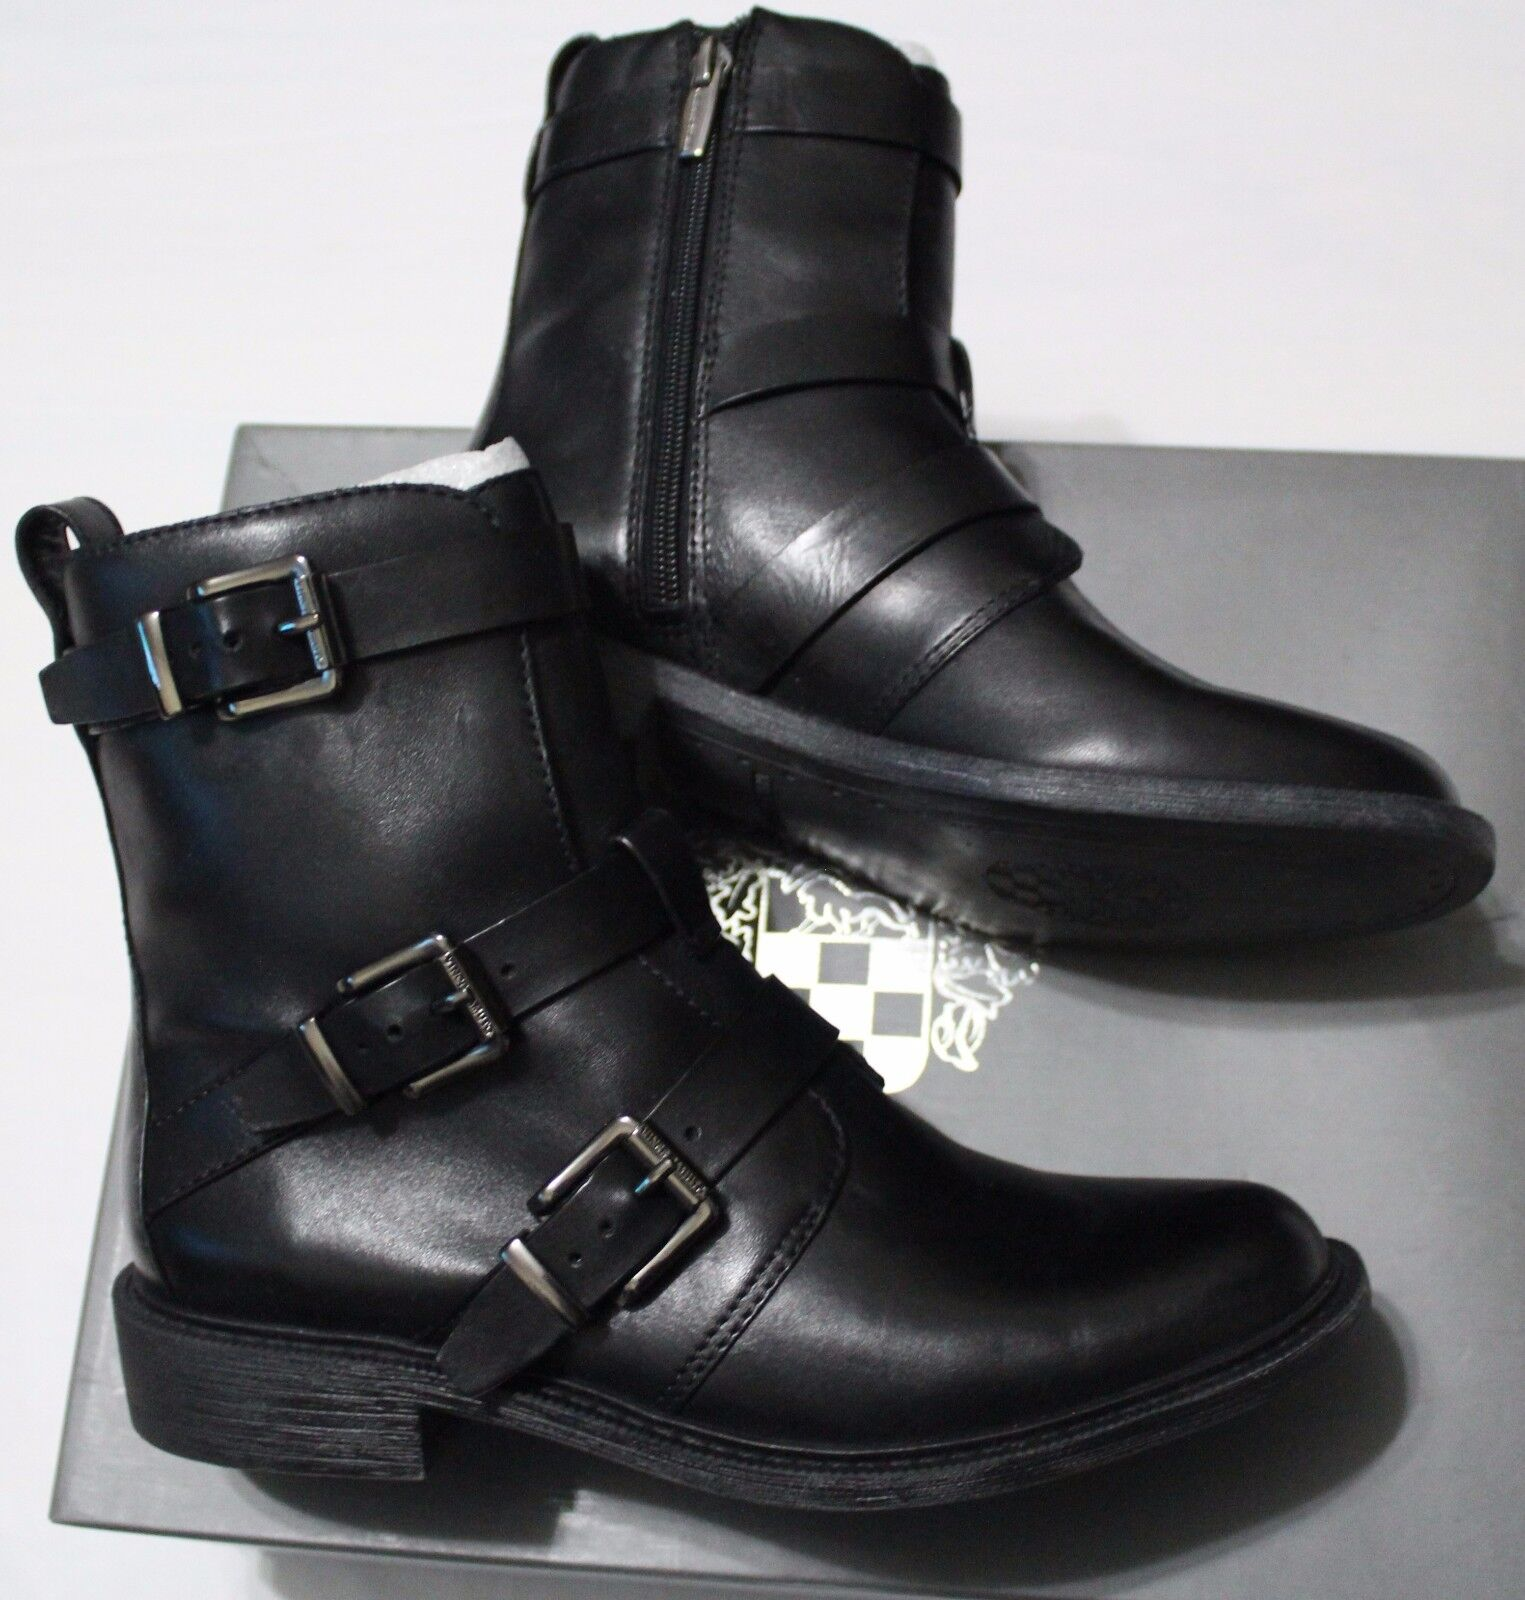 149 VINCE CAMUTO RAEGEL BLACK SILKY LEATHER LEATHER SILKY ANKLE BOOT US 6M 34673d